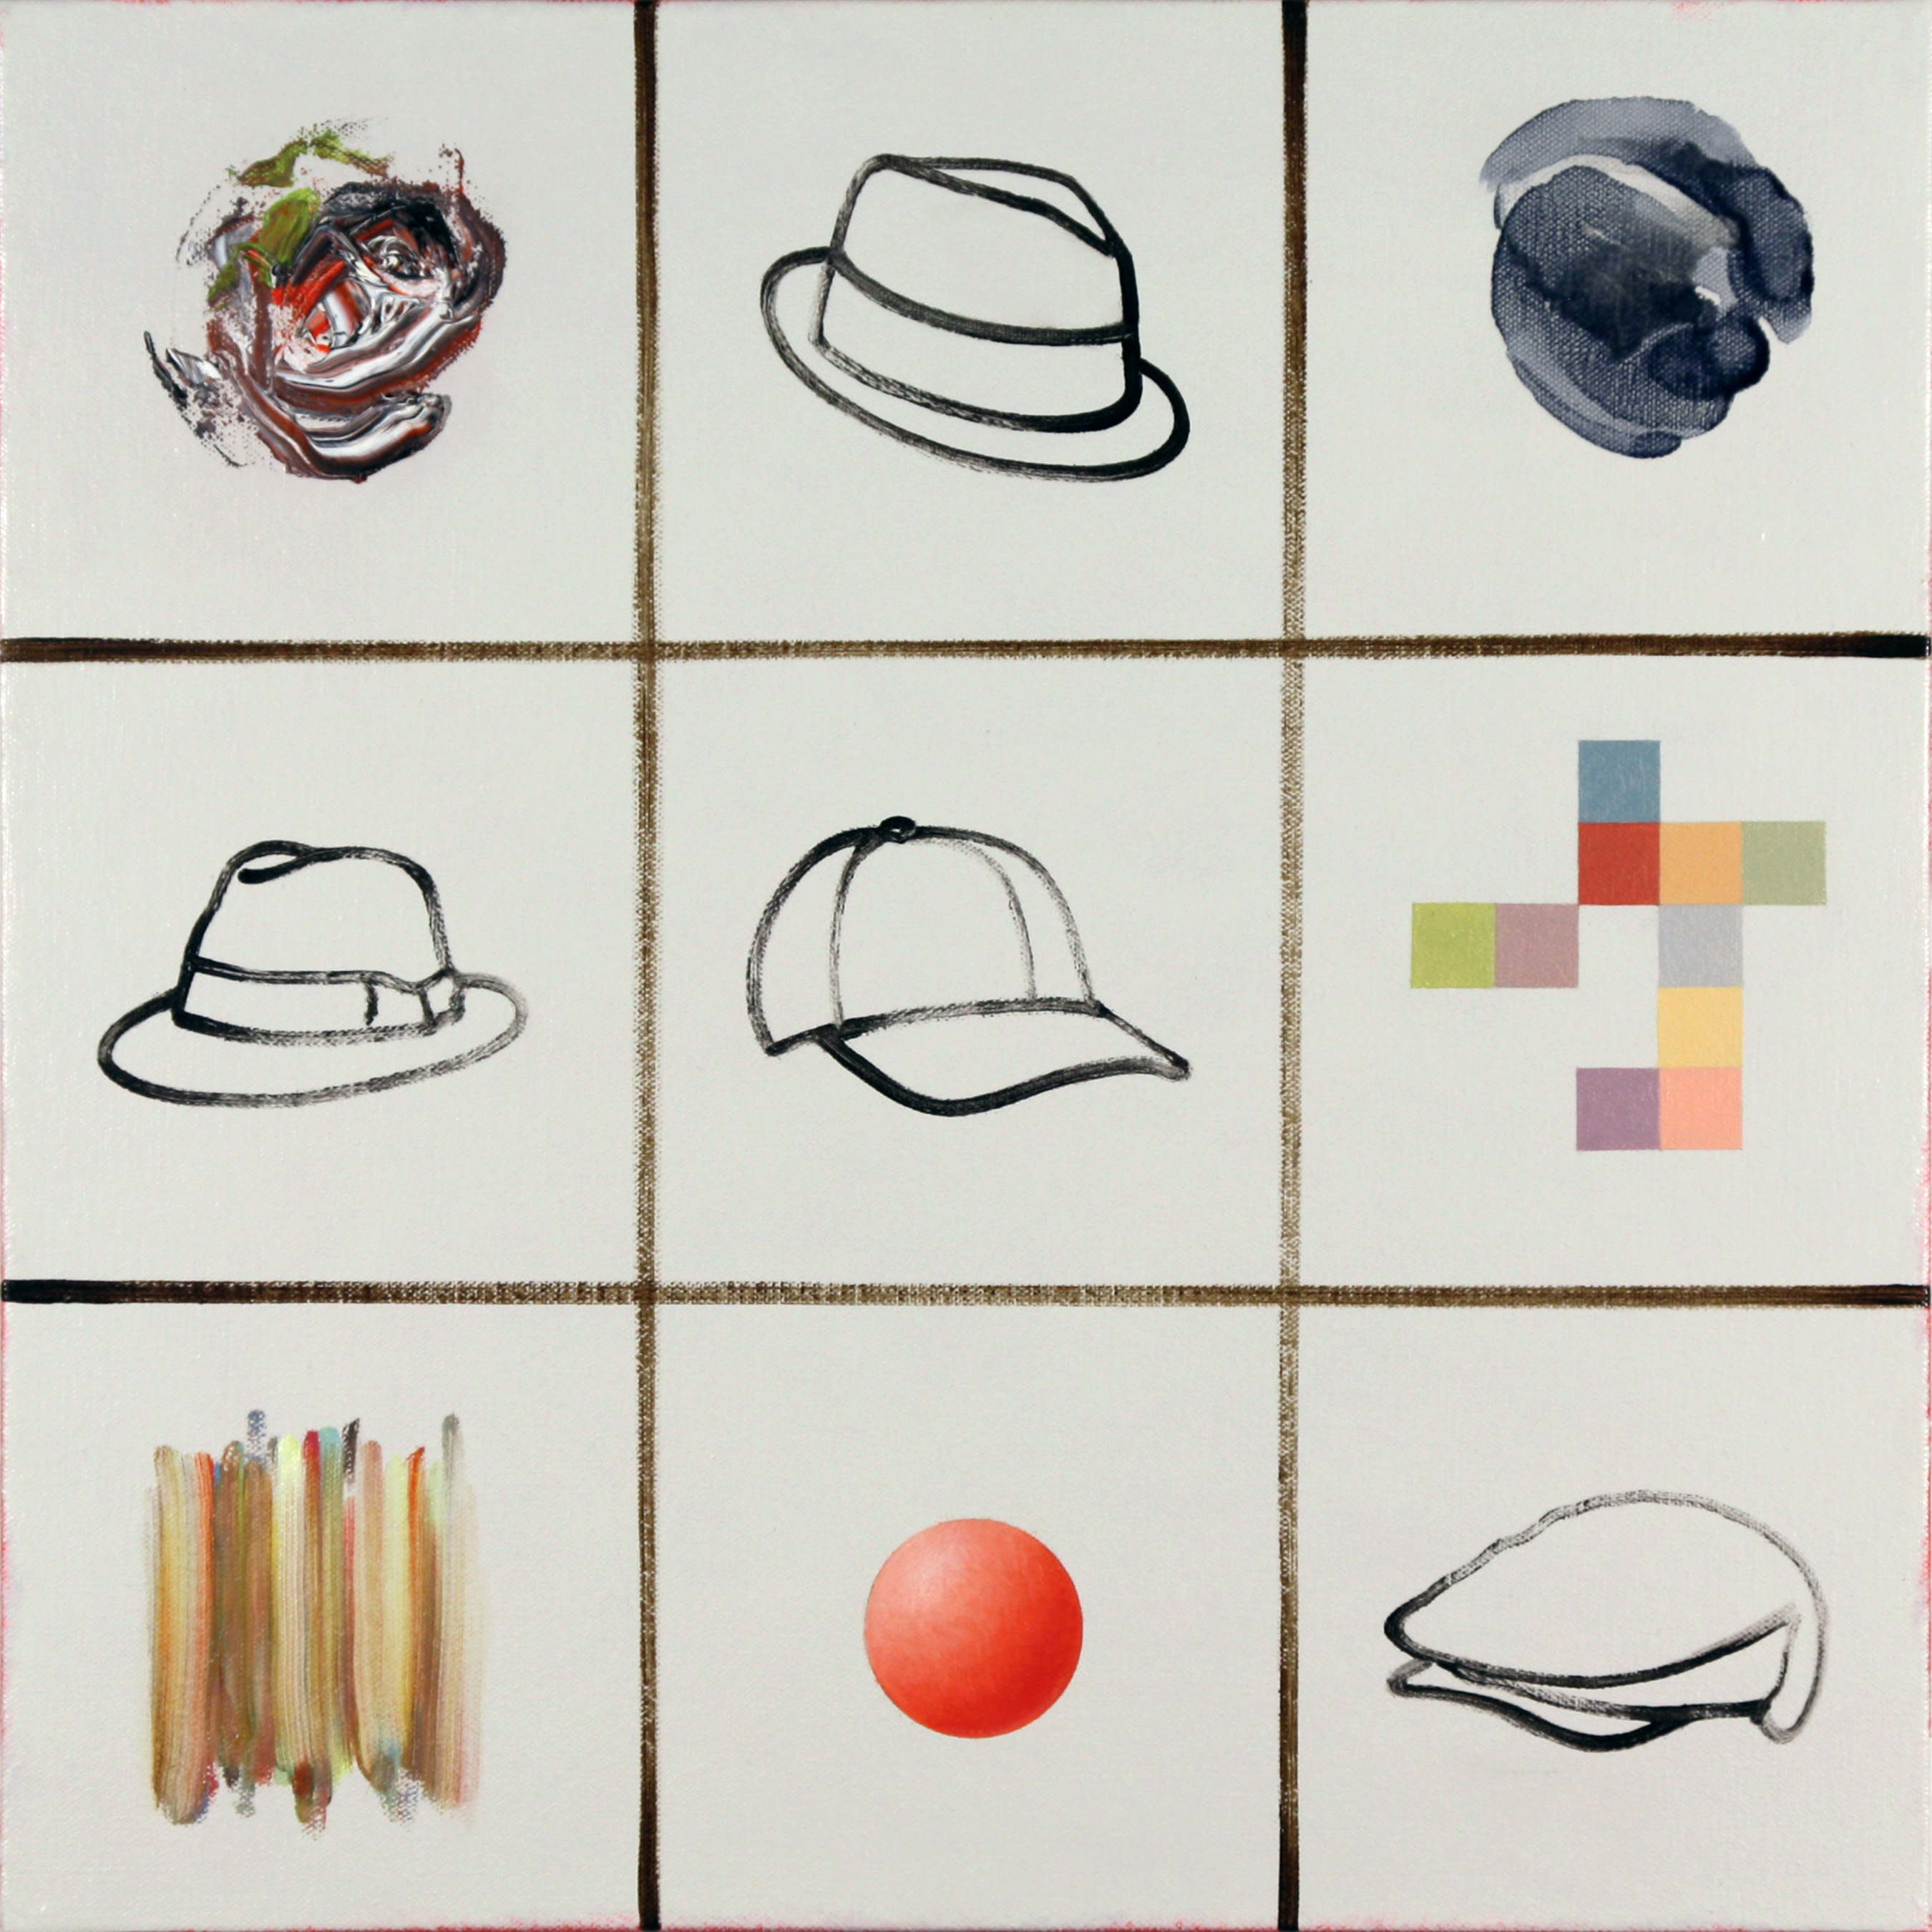 Hats vs. Paint